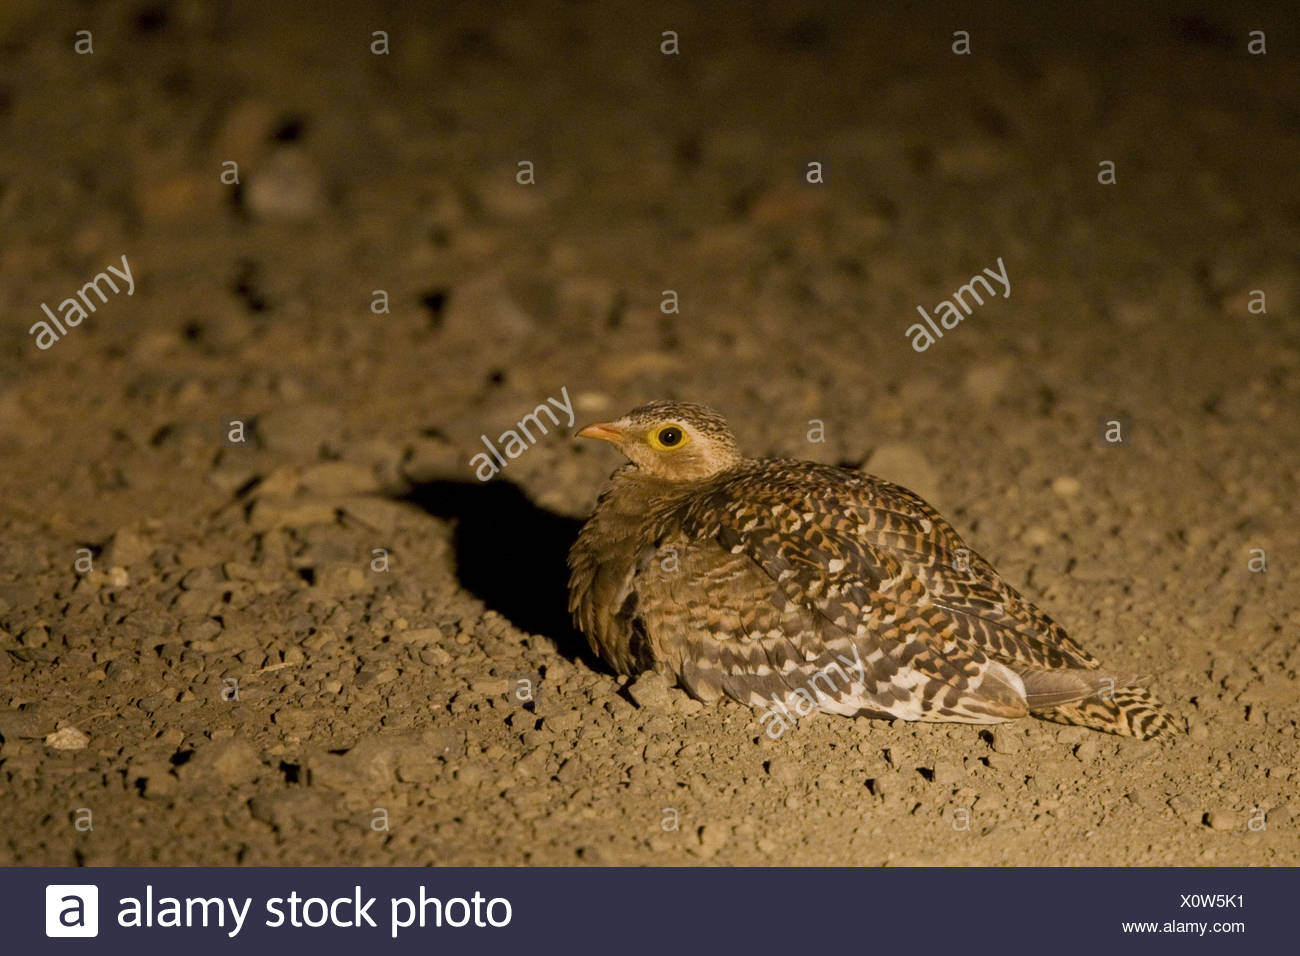 doublebanded sandgrouse photographed using spot - Stock Image